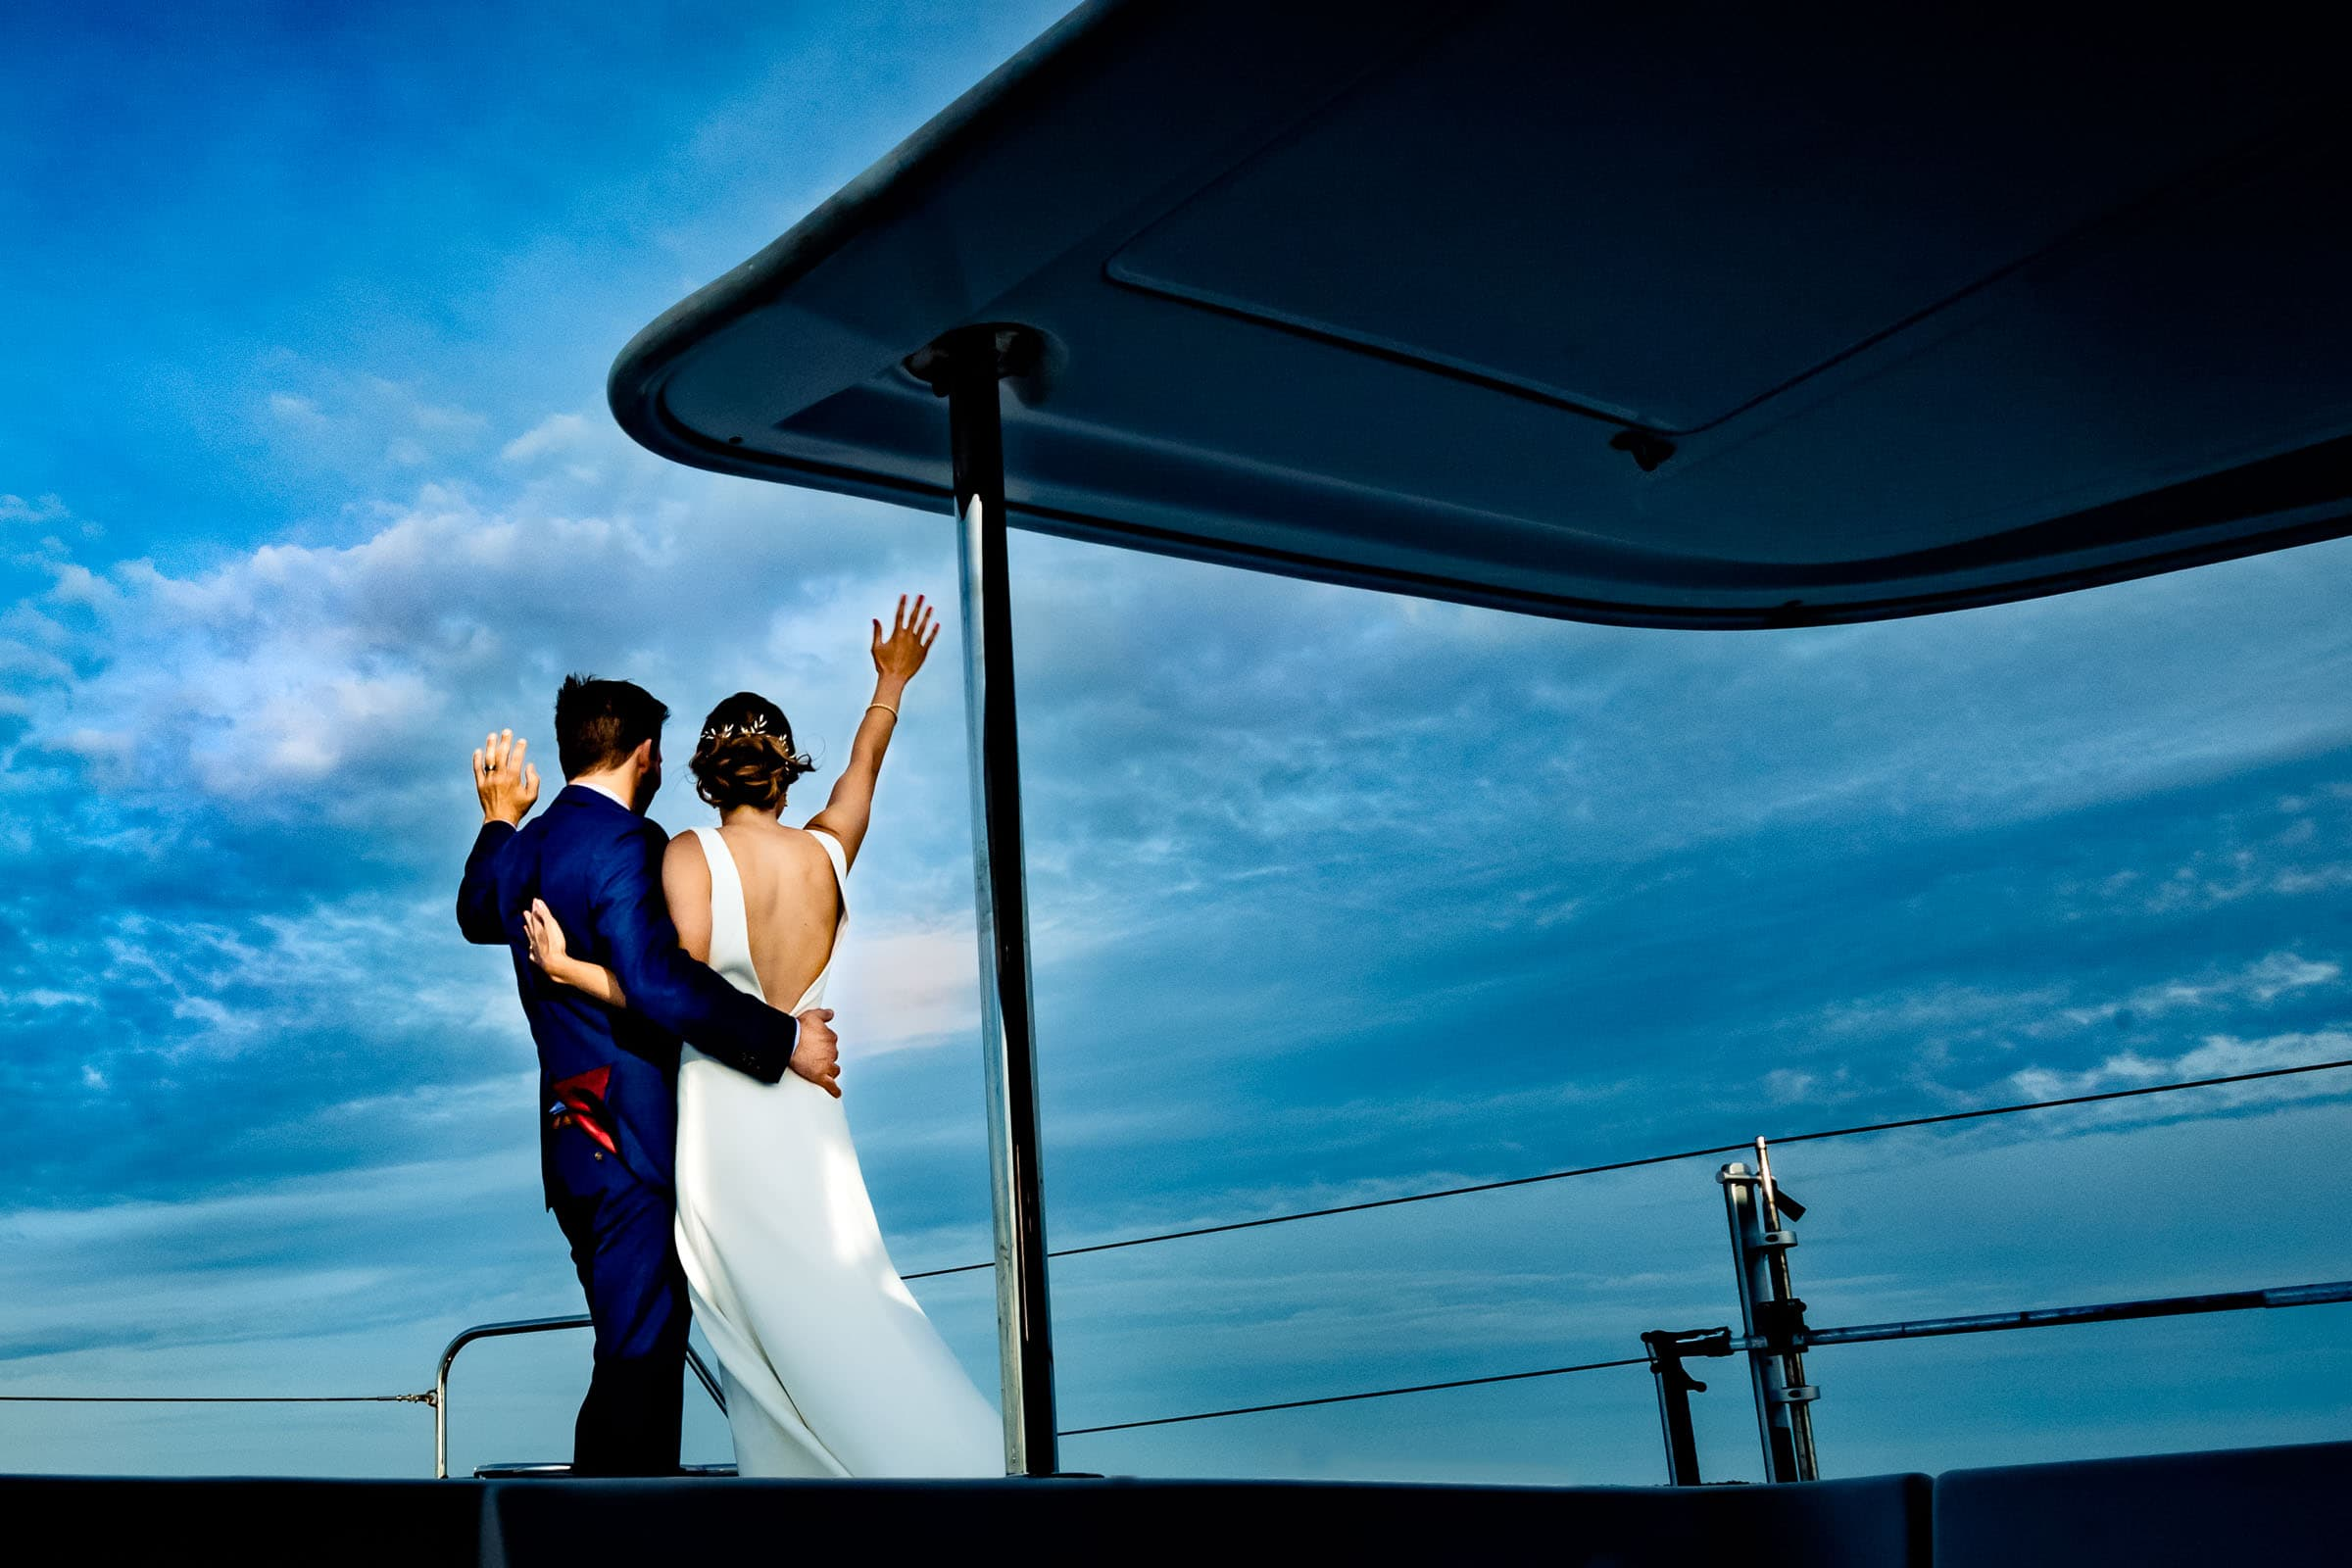 Bride and groom waving goodbye from their catamaran in Chesapeake Bay Maryland